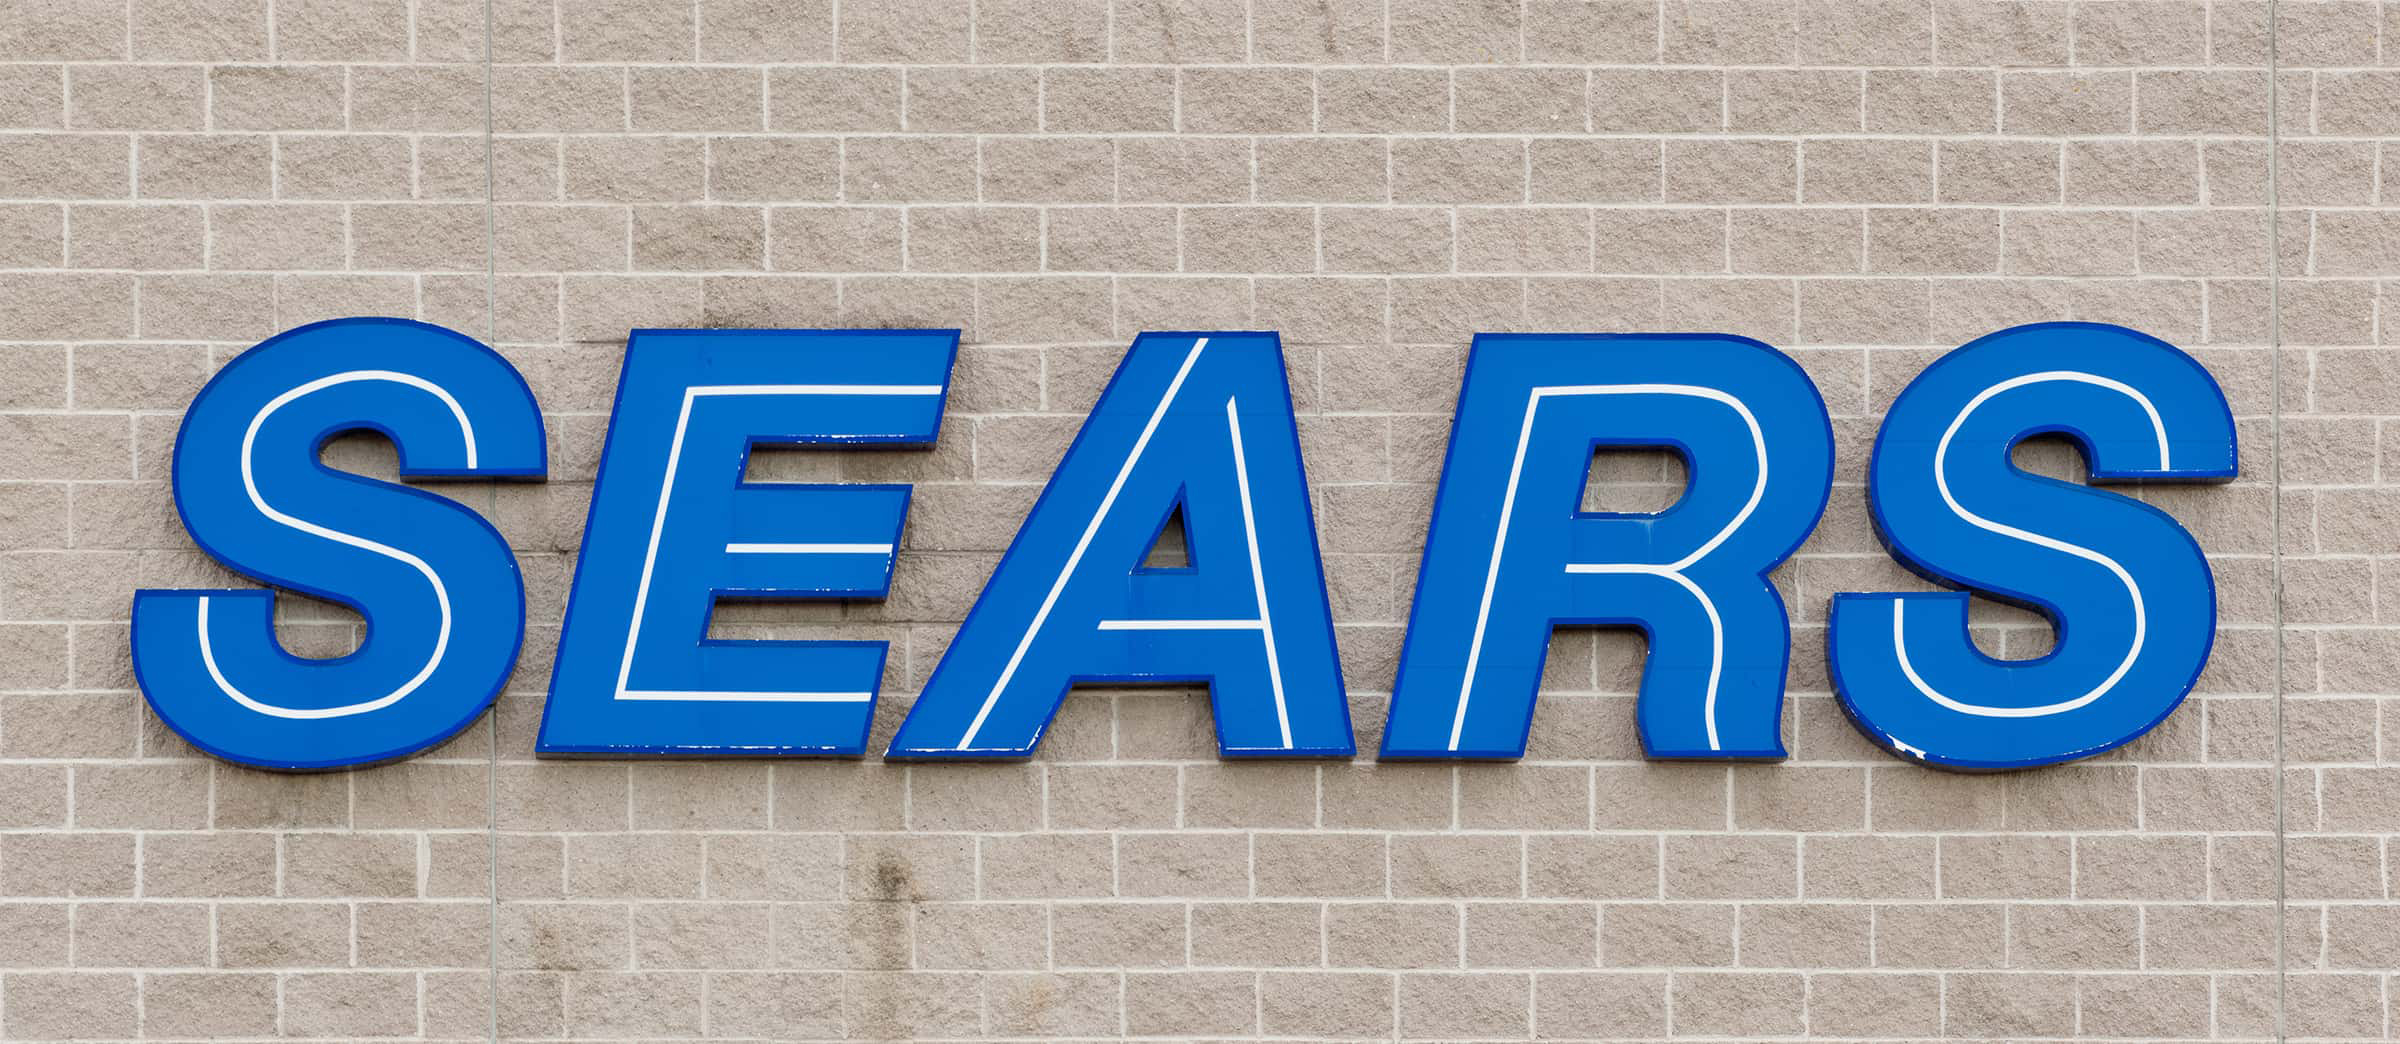 sears storefront logo